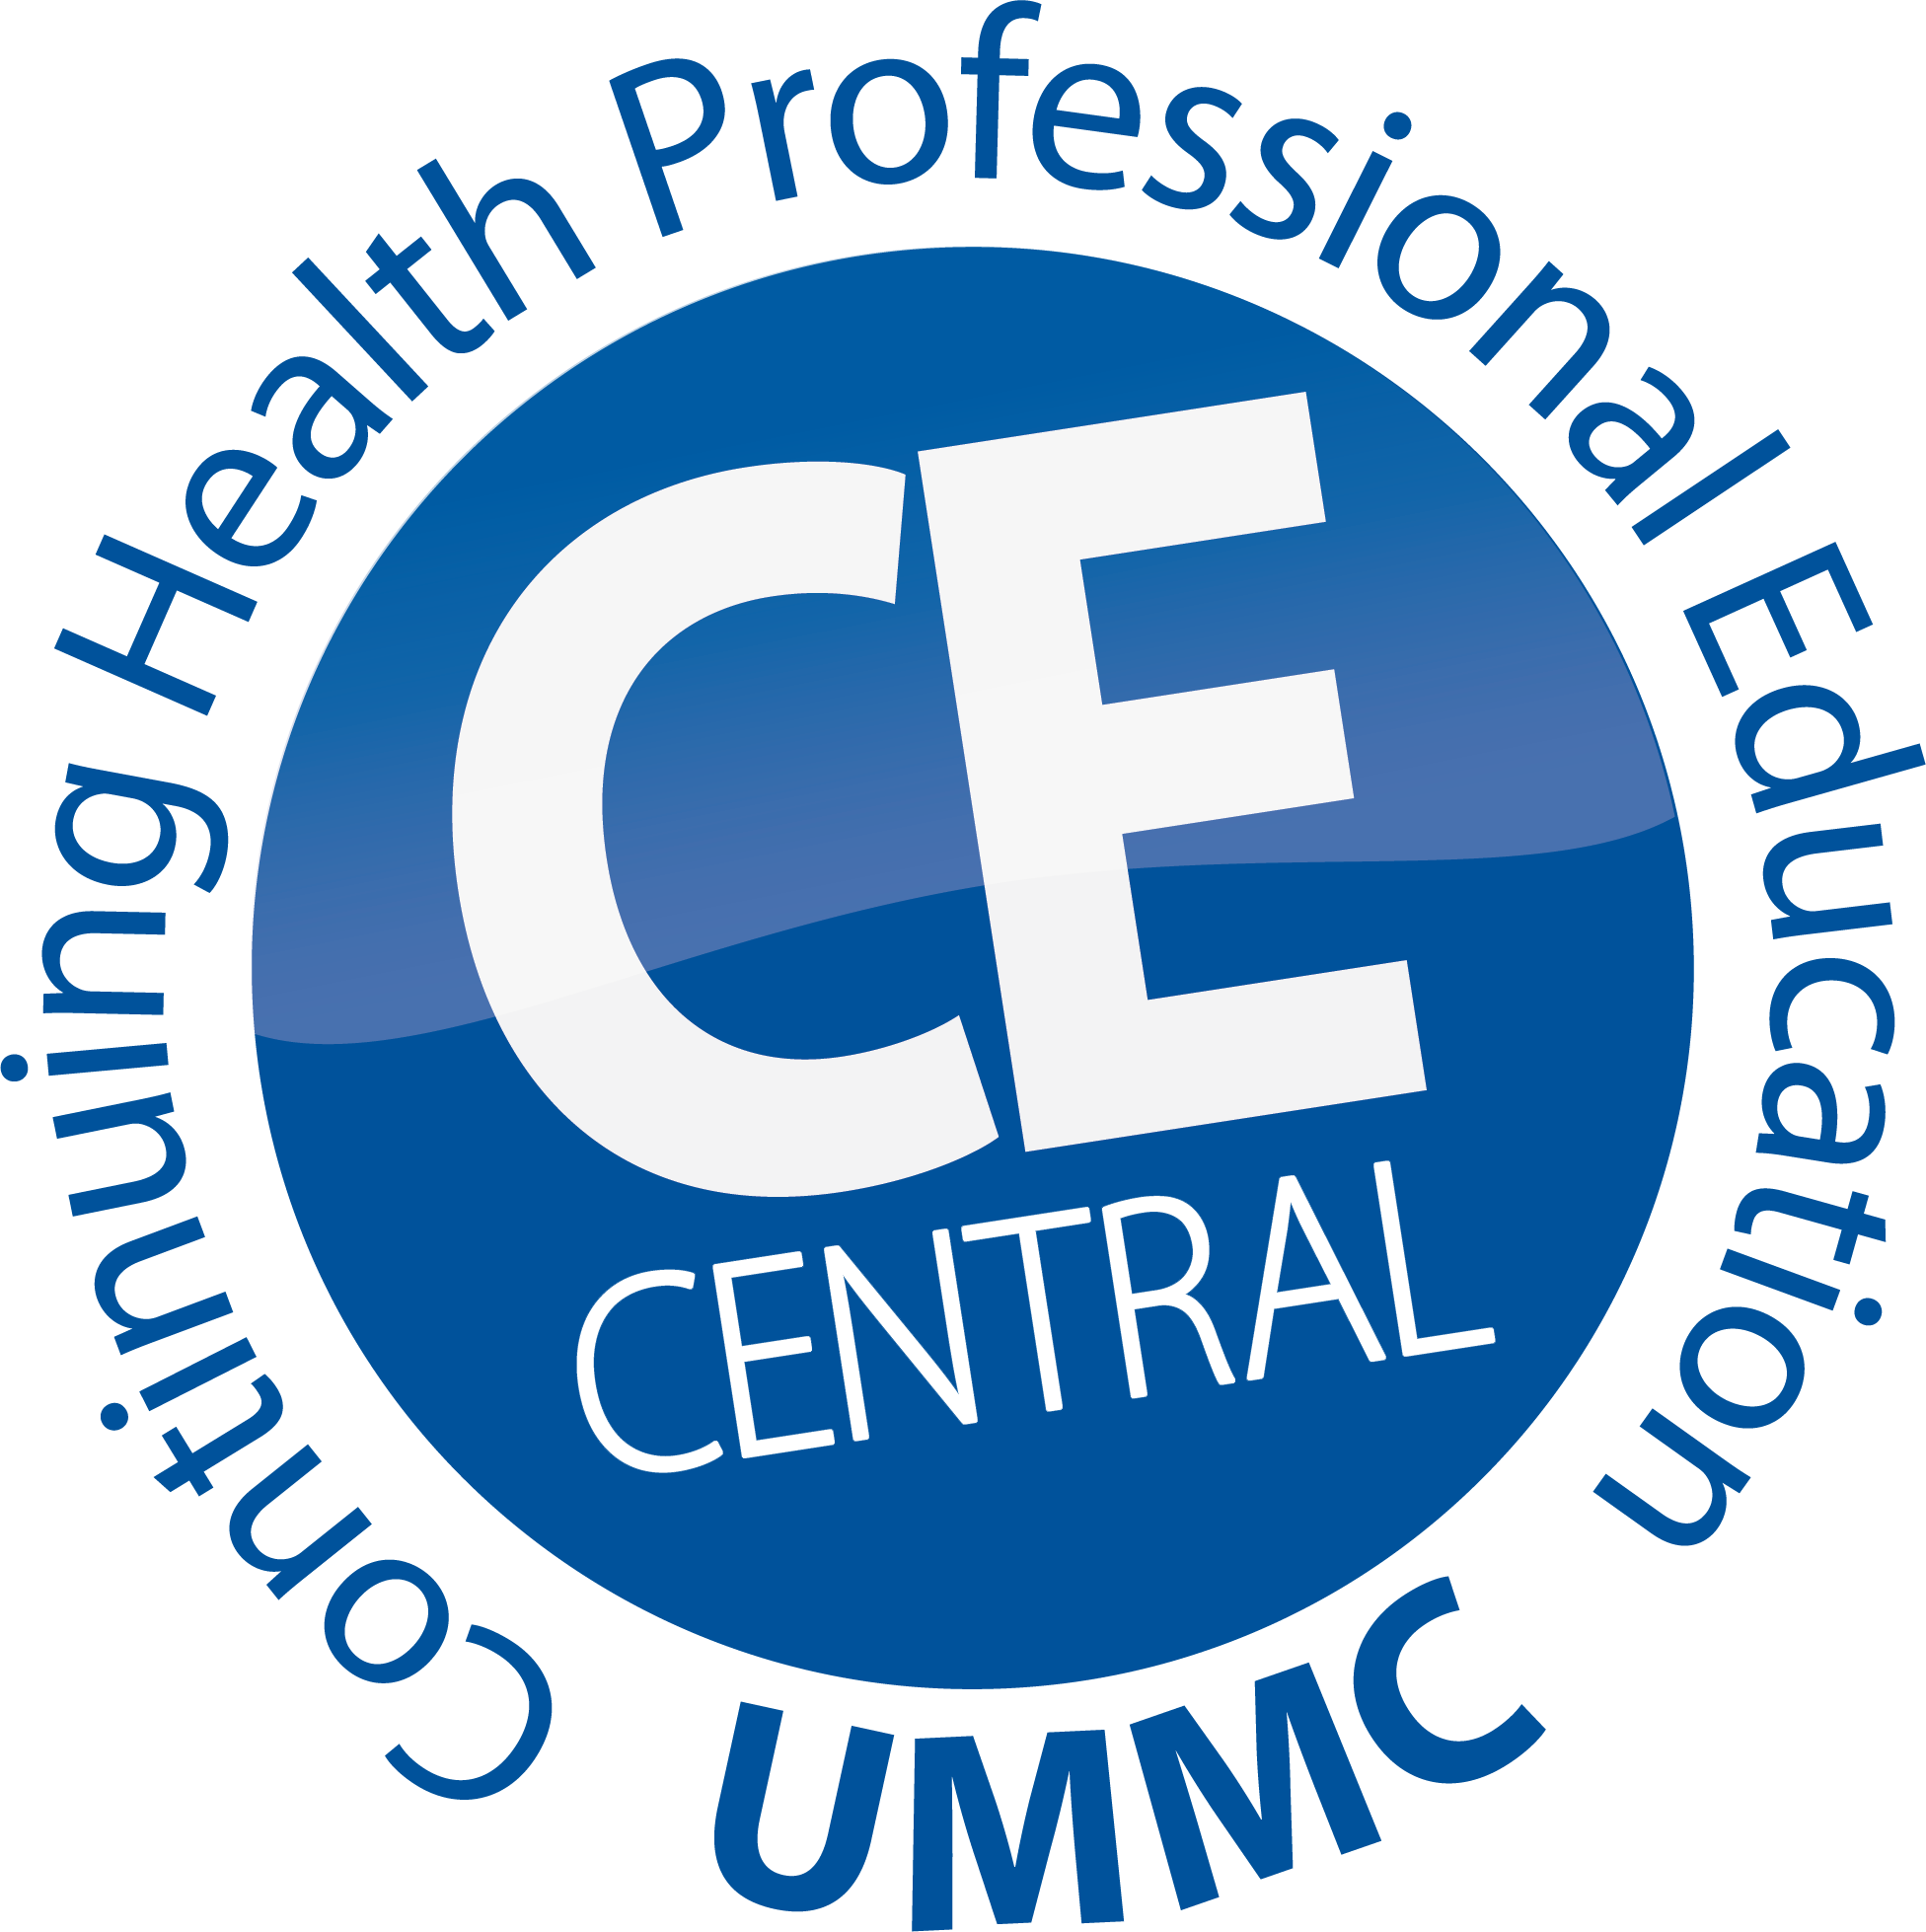 CE Central Continuing Health Professional Education UMMC.